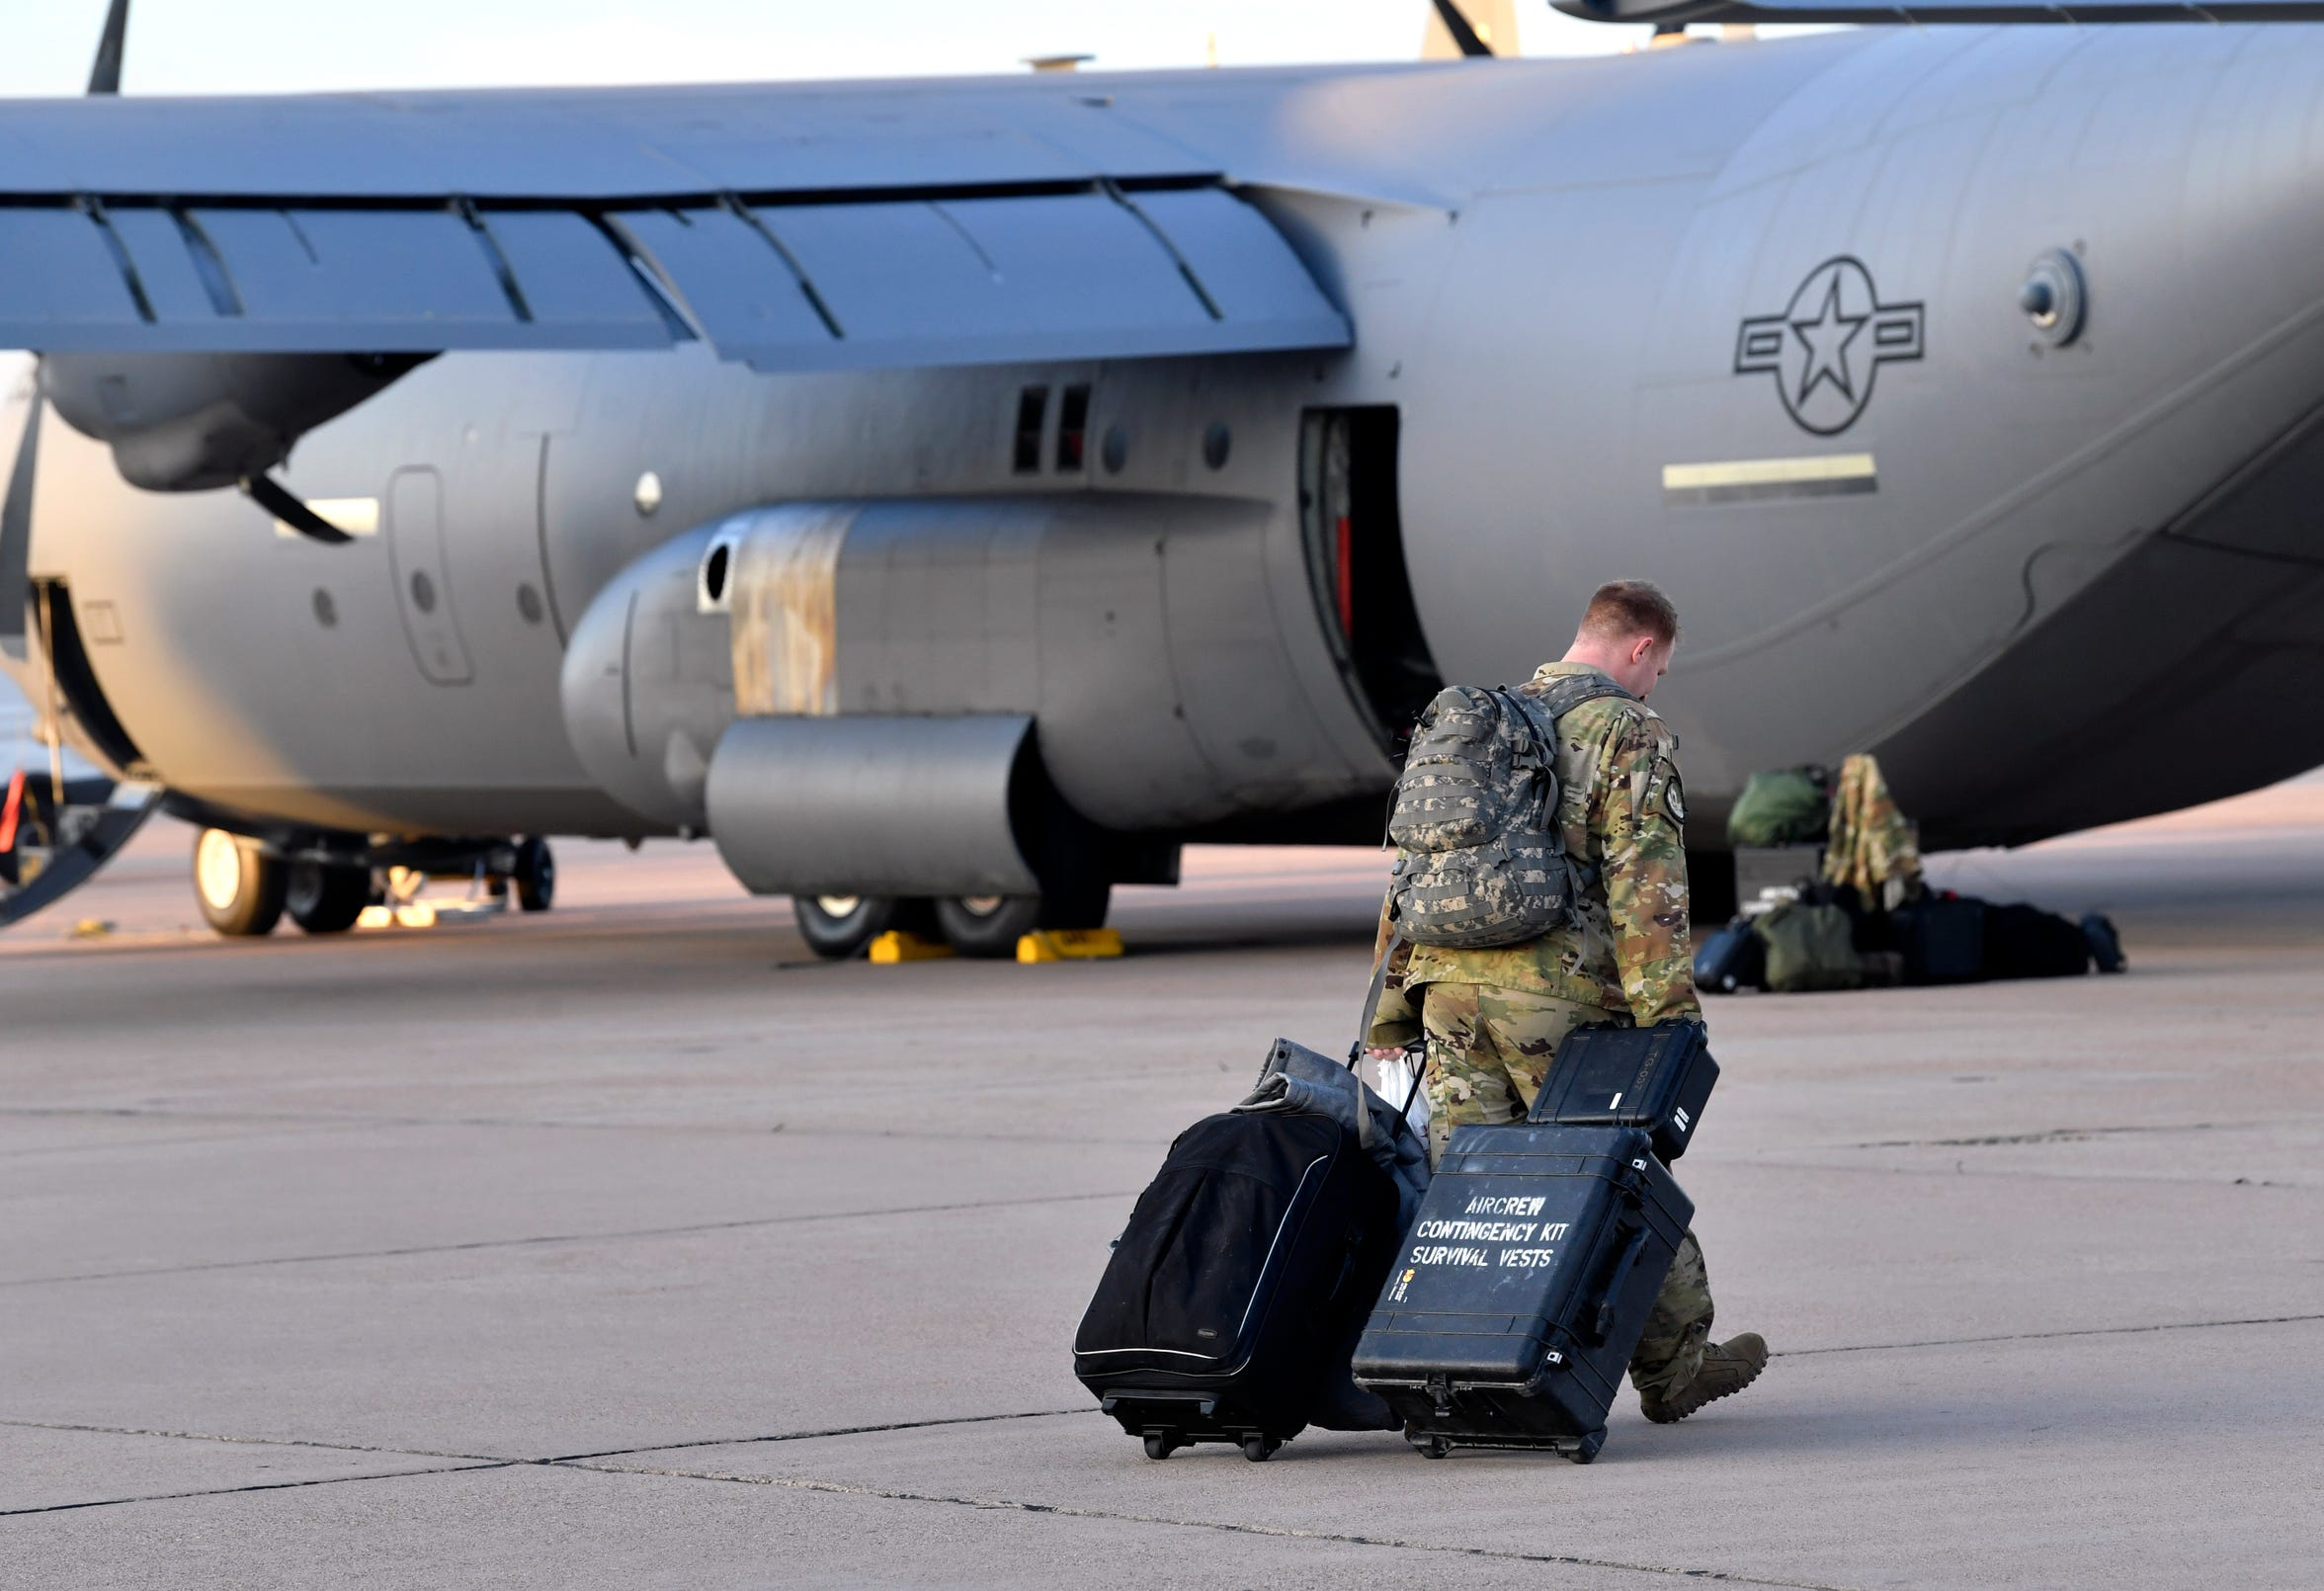 An airman wheels his luggage onto the flight line at Dyess Air Force Base on Sept. 9. Members of the 39th Airlift Squadron packed not only for their four-month deployment to Afghanistan, but for the three or more days it would take to fly there in their C-130J Super Hercules cargo planes.